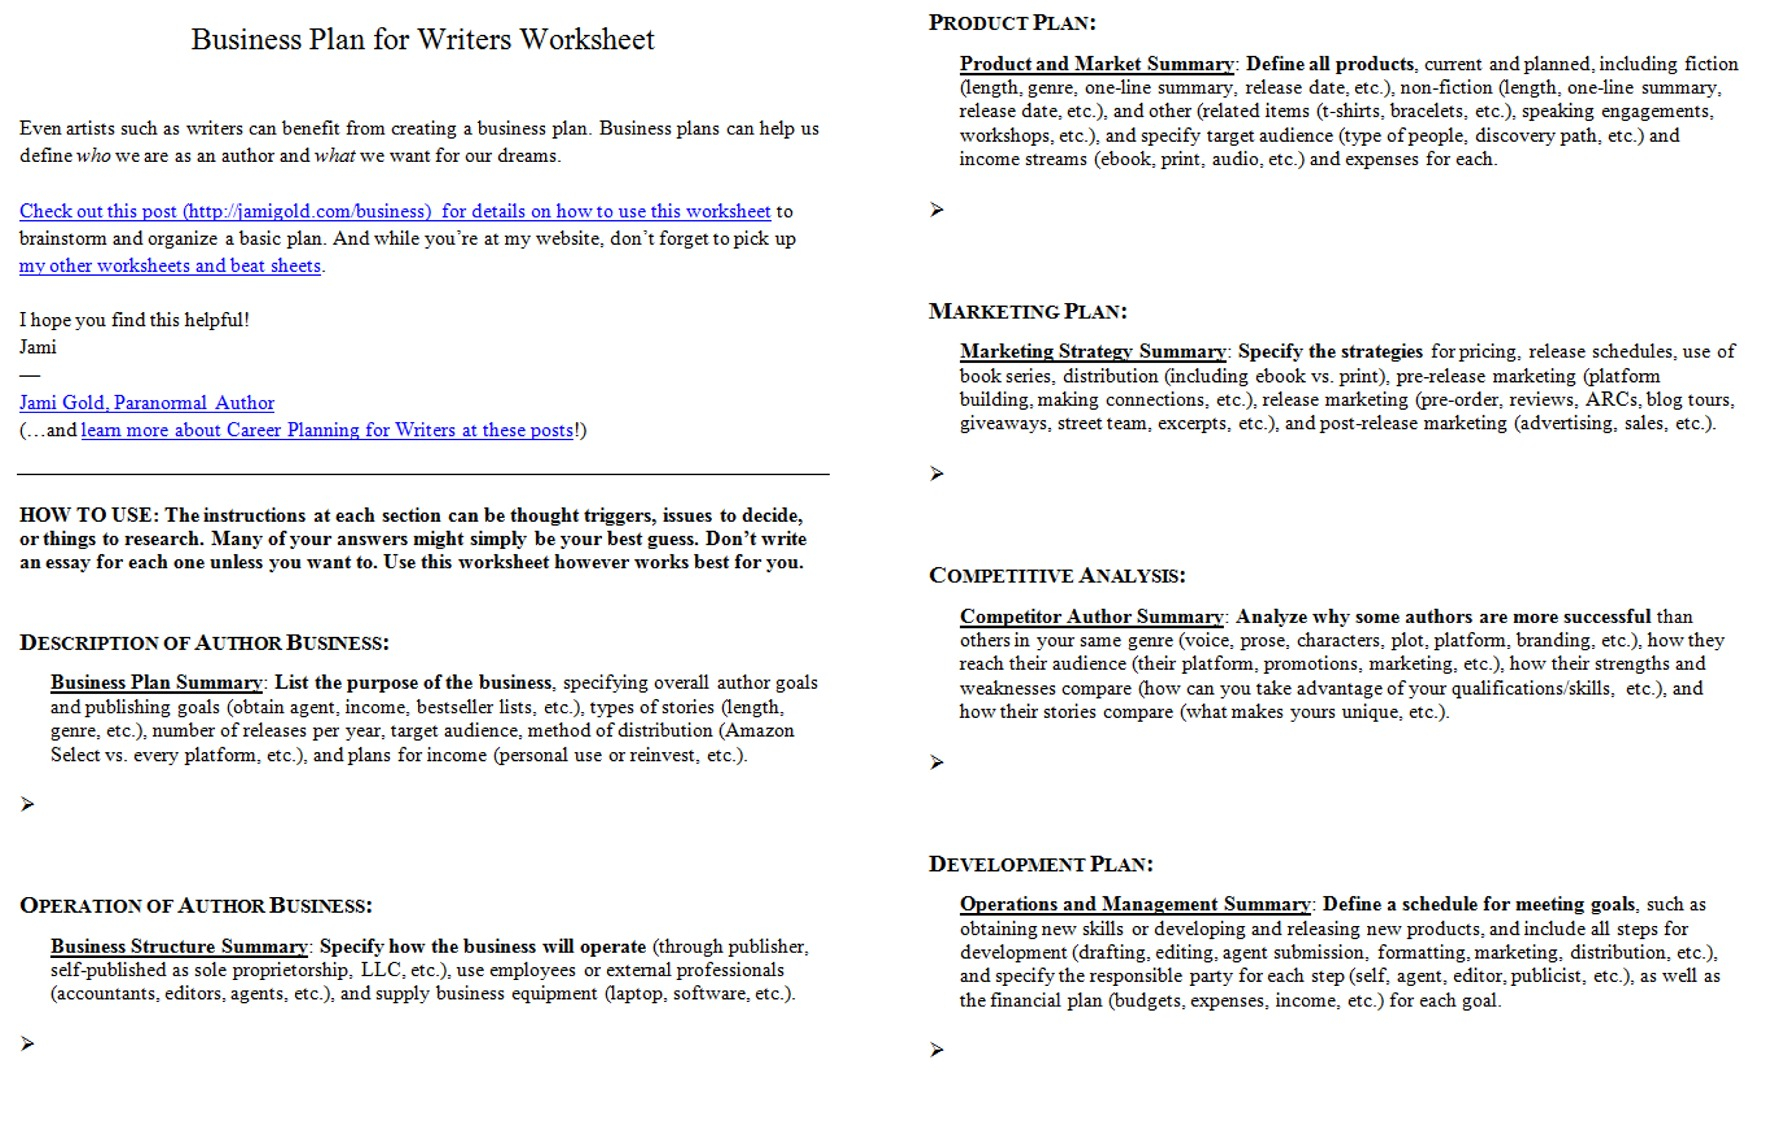 Aldiablosus  Pleasing Worksheets For Writers  Jami Gold Paranormal Author With Foxy Screen Shot Of Both Pages Of The Business Plan For Writers Worksheet With Nice Kindergarten Sequencing Worksheets Also Works Cited Worksheet In Addition Printable Geometry Worksheets And Reading Worksheets For Th Grade As Well As Quadratic Linear Systems Worksheet Additionally Blank Writing Worksheets From Jamigoldcom With Aldiablosus  Foxy Worksheets For Writers  Jami Gold Paranormal Author With Nice Screen Shot Of Both Pages Of The Business Plan For Writers Worksheet And Pleasing Kindergarten Sequencing Worksheets Also Works Cited Worksheet In Addition Printable Geometry Worksheets From Jamigoldcom